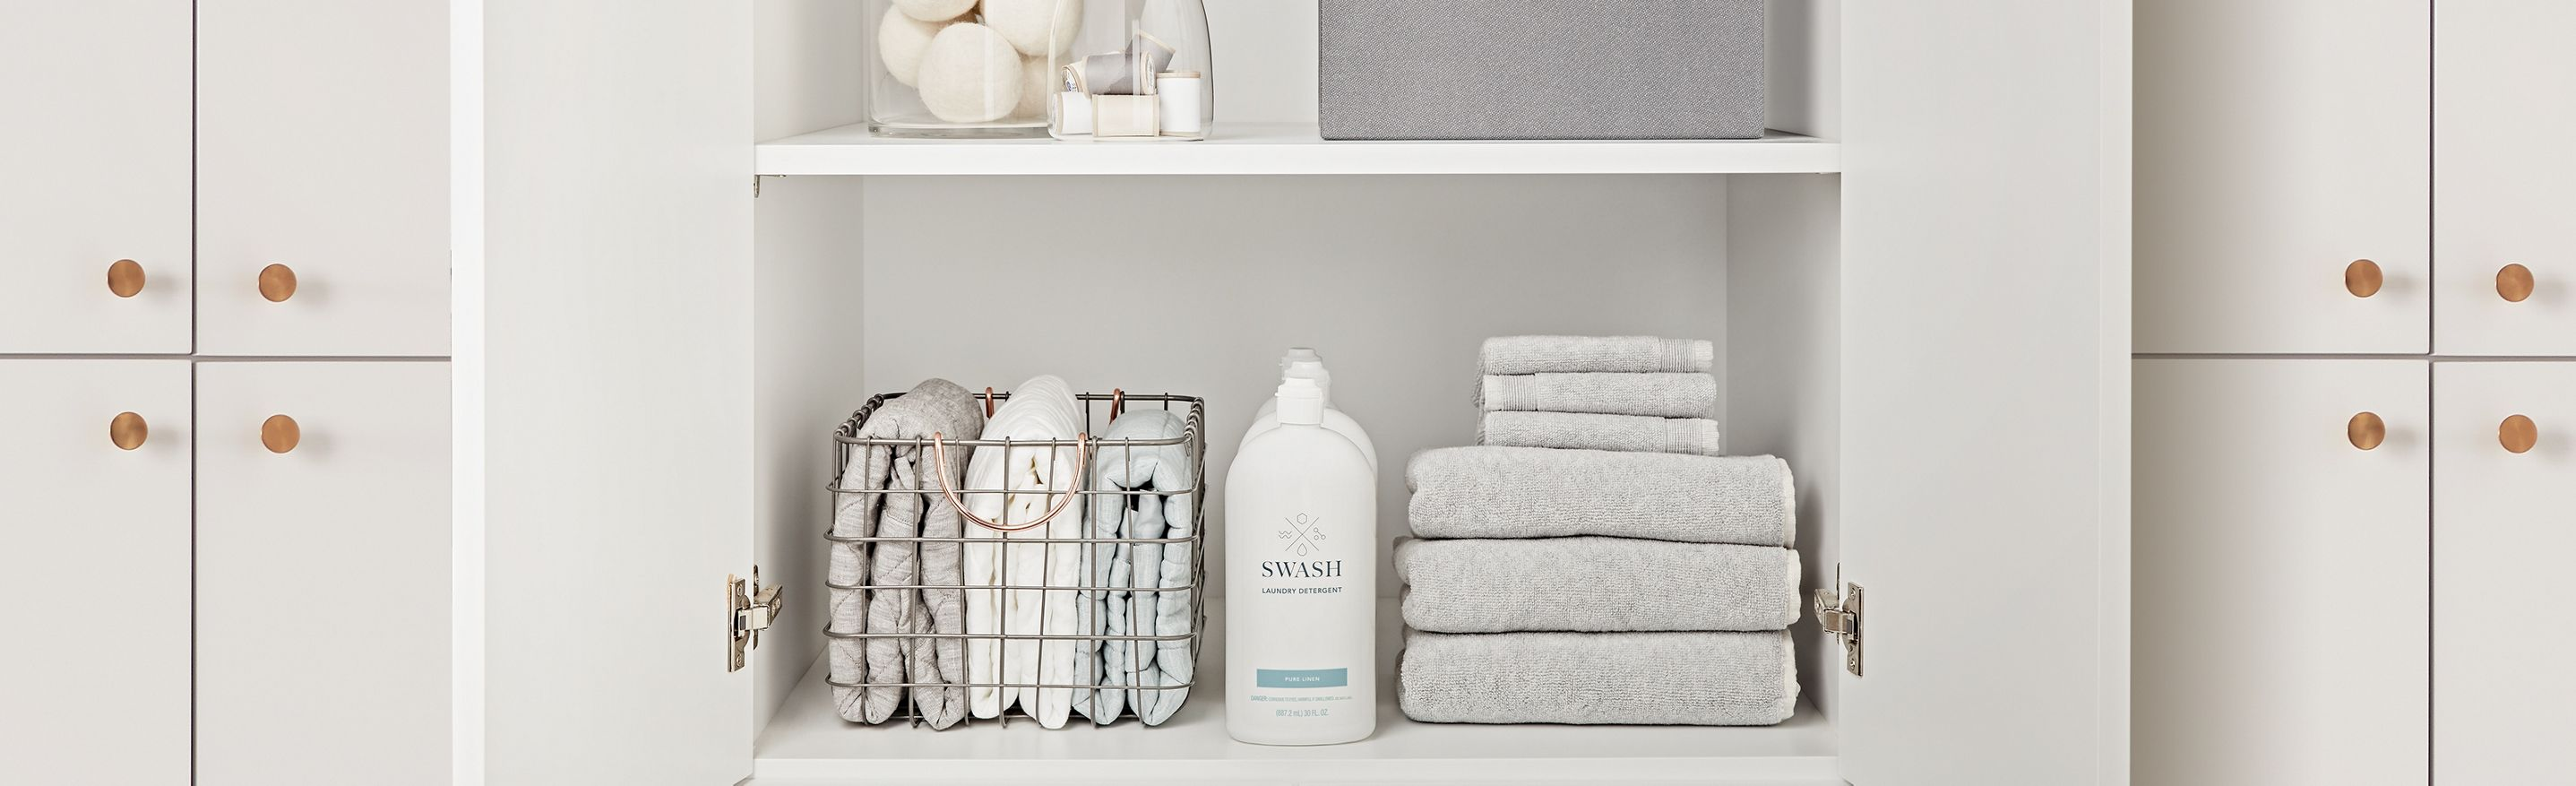 Swash Pure Linen Laundry Detergent on a white shelf in a laundry room next to light gray towels